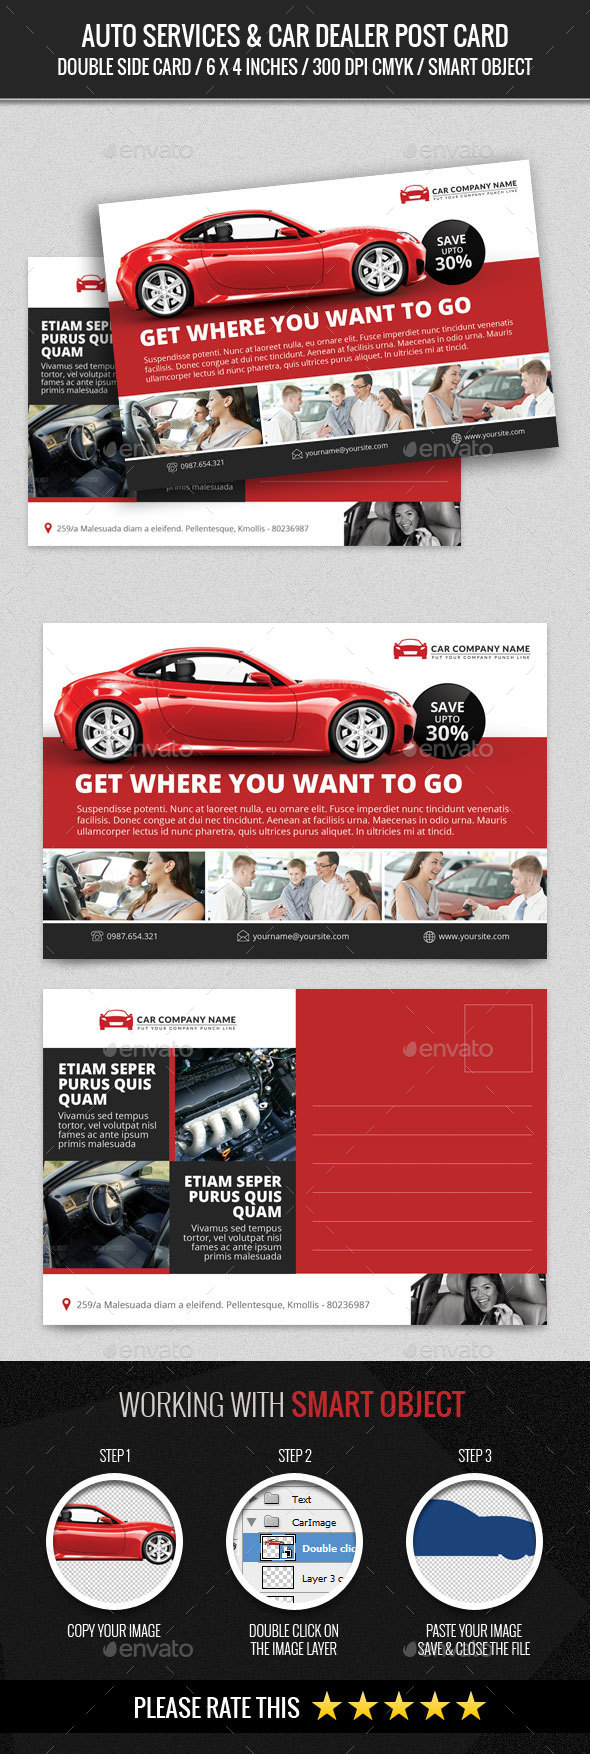 Auto Services & Car Dealer Post Card - Cards & Invites Print Templates